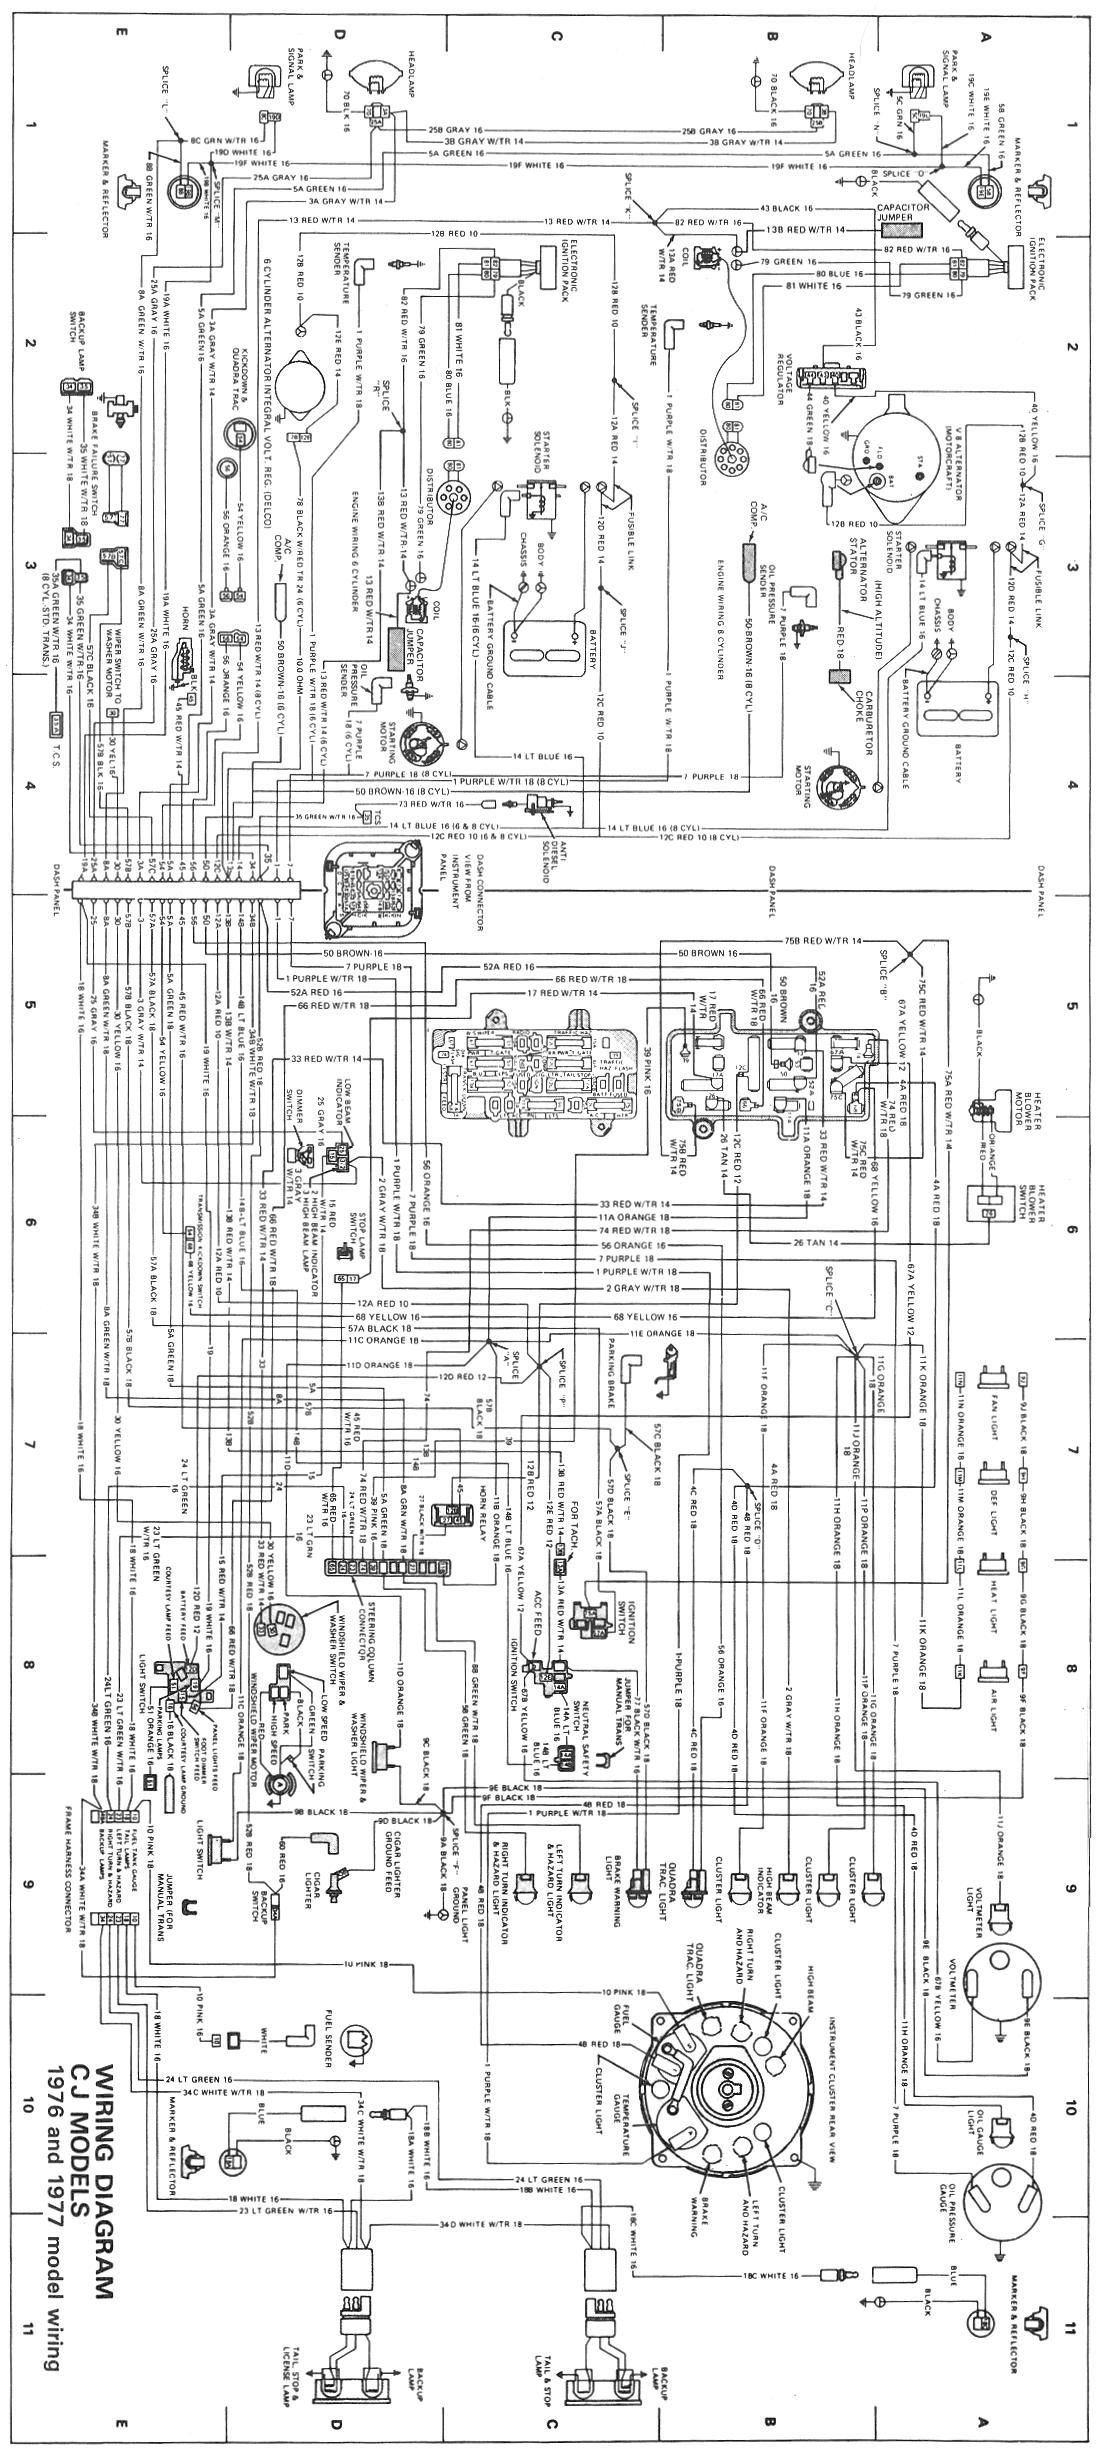 medium resolution of jeep wiring diagrams 1976 and 1977 cj jeep wiring pinterest 1974 jeep cj5 wiring diagram jeep cj5 wiring schematic